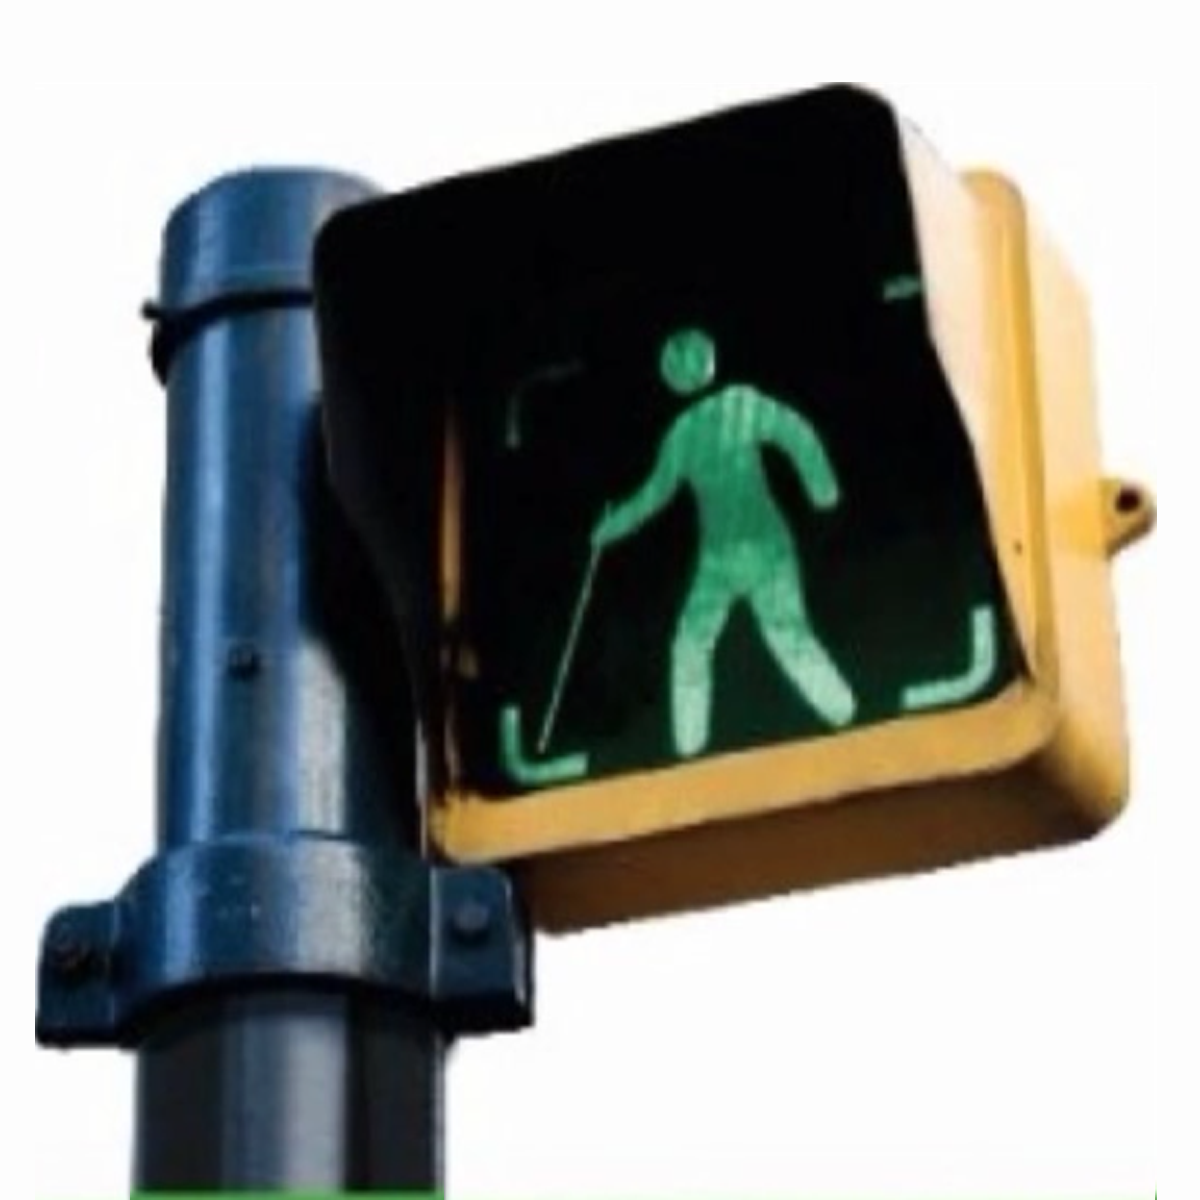 Logo for Argentina's green cane law, which designates people with low vision.